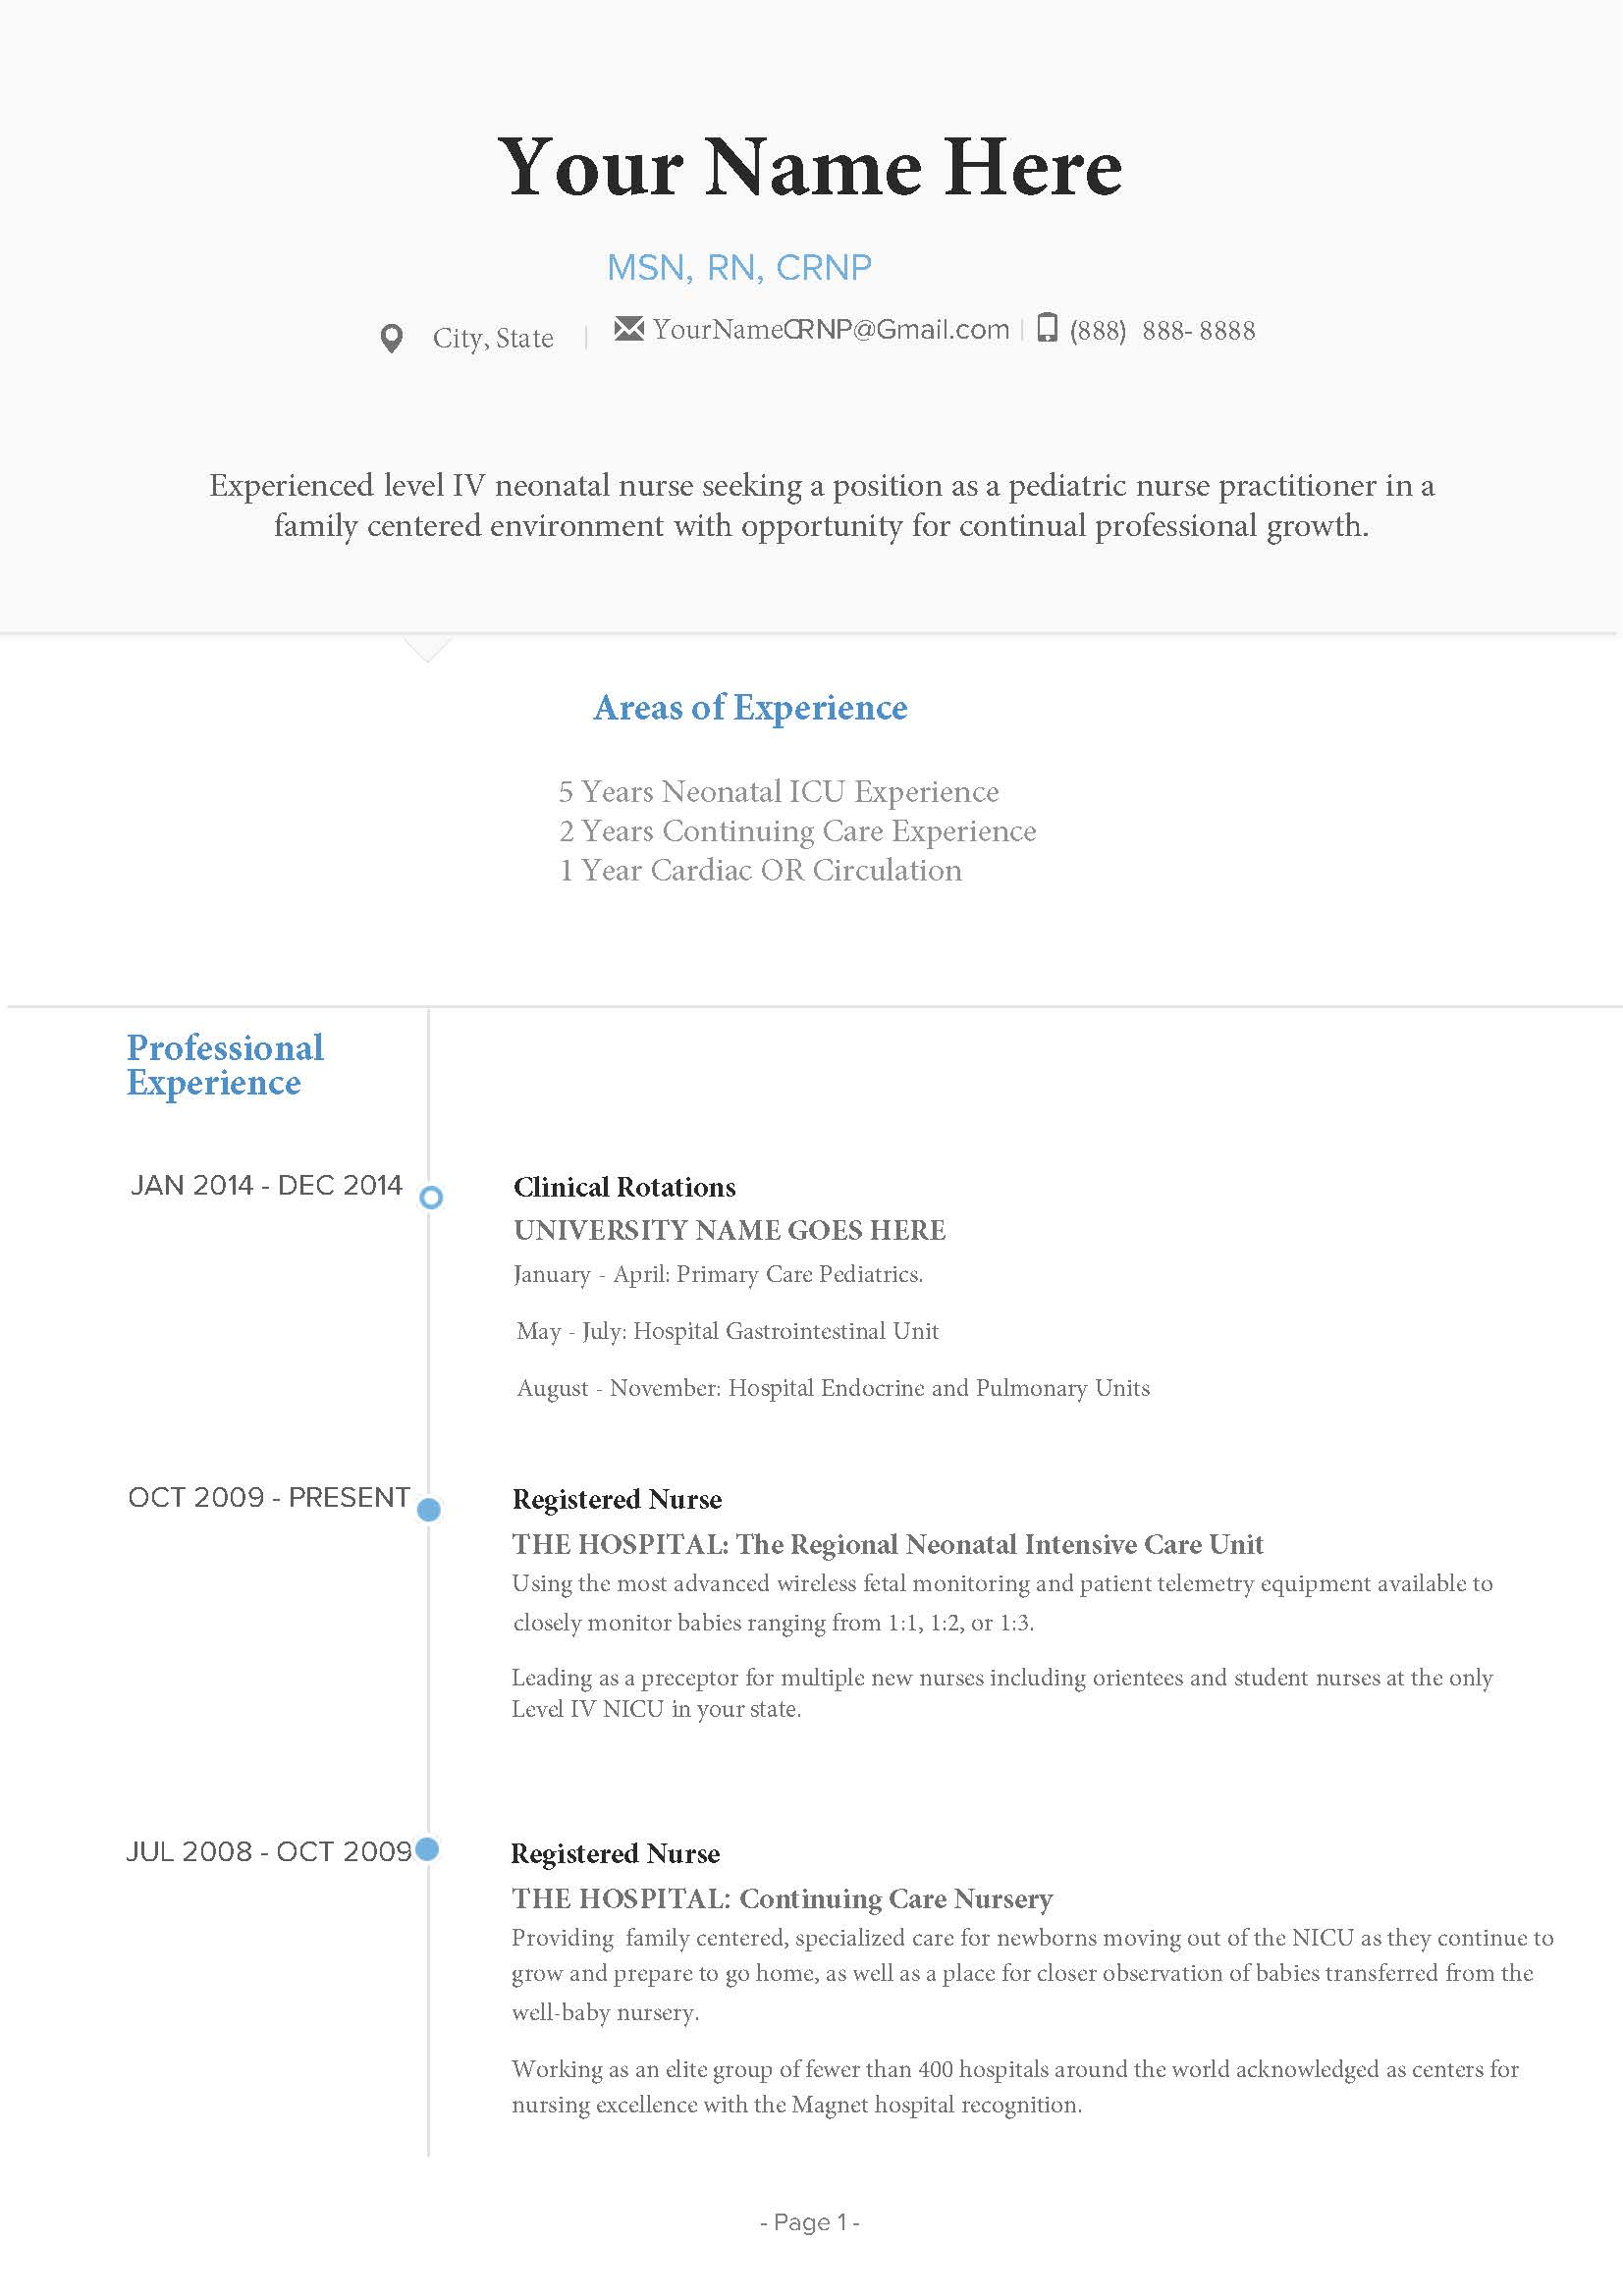 Nurse Practitioner Resume Guide